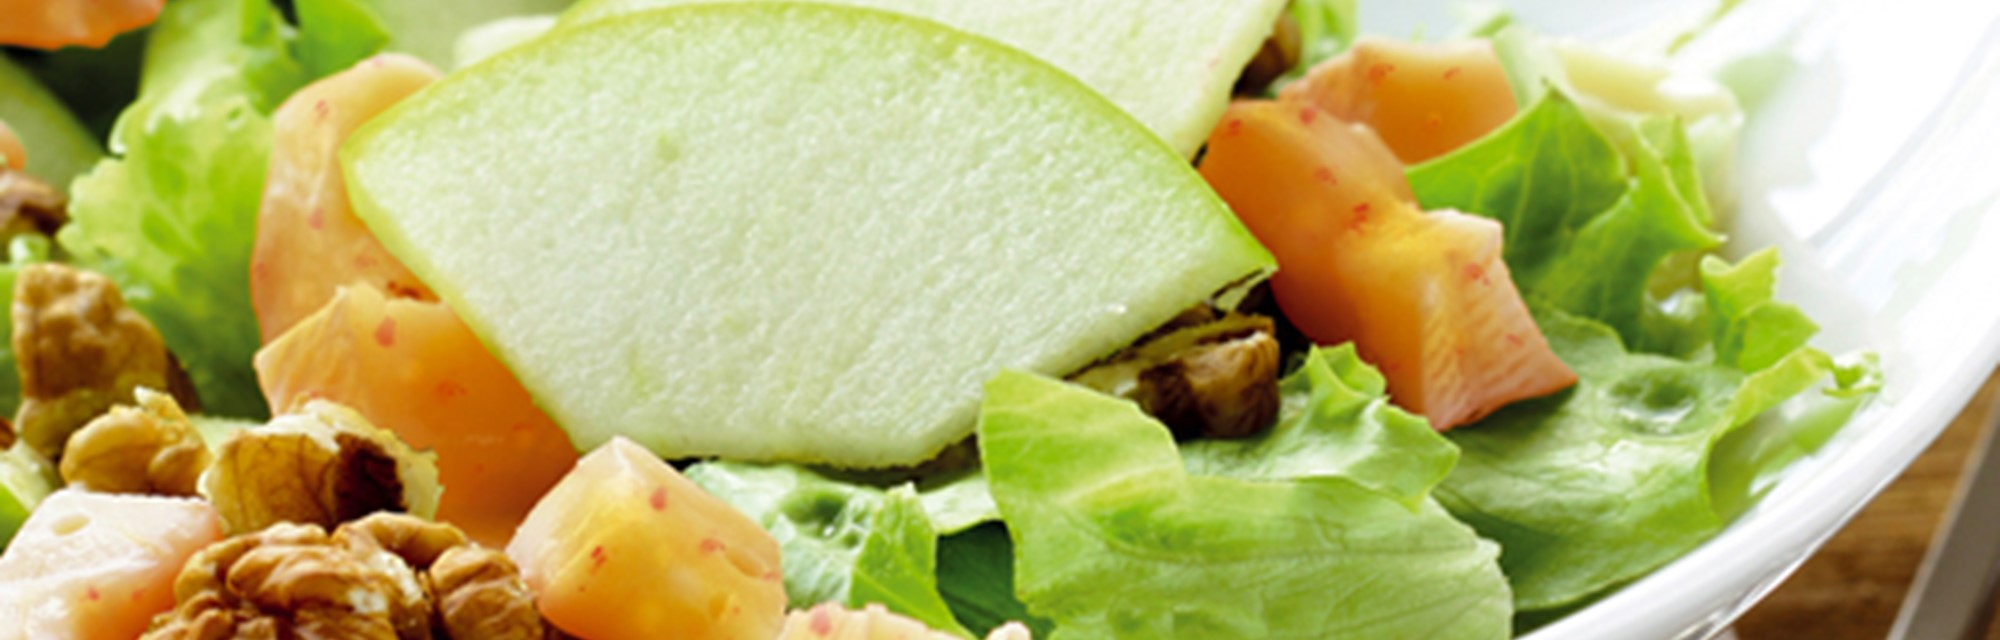 Header - Cheddar Salad